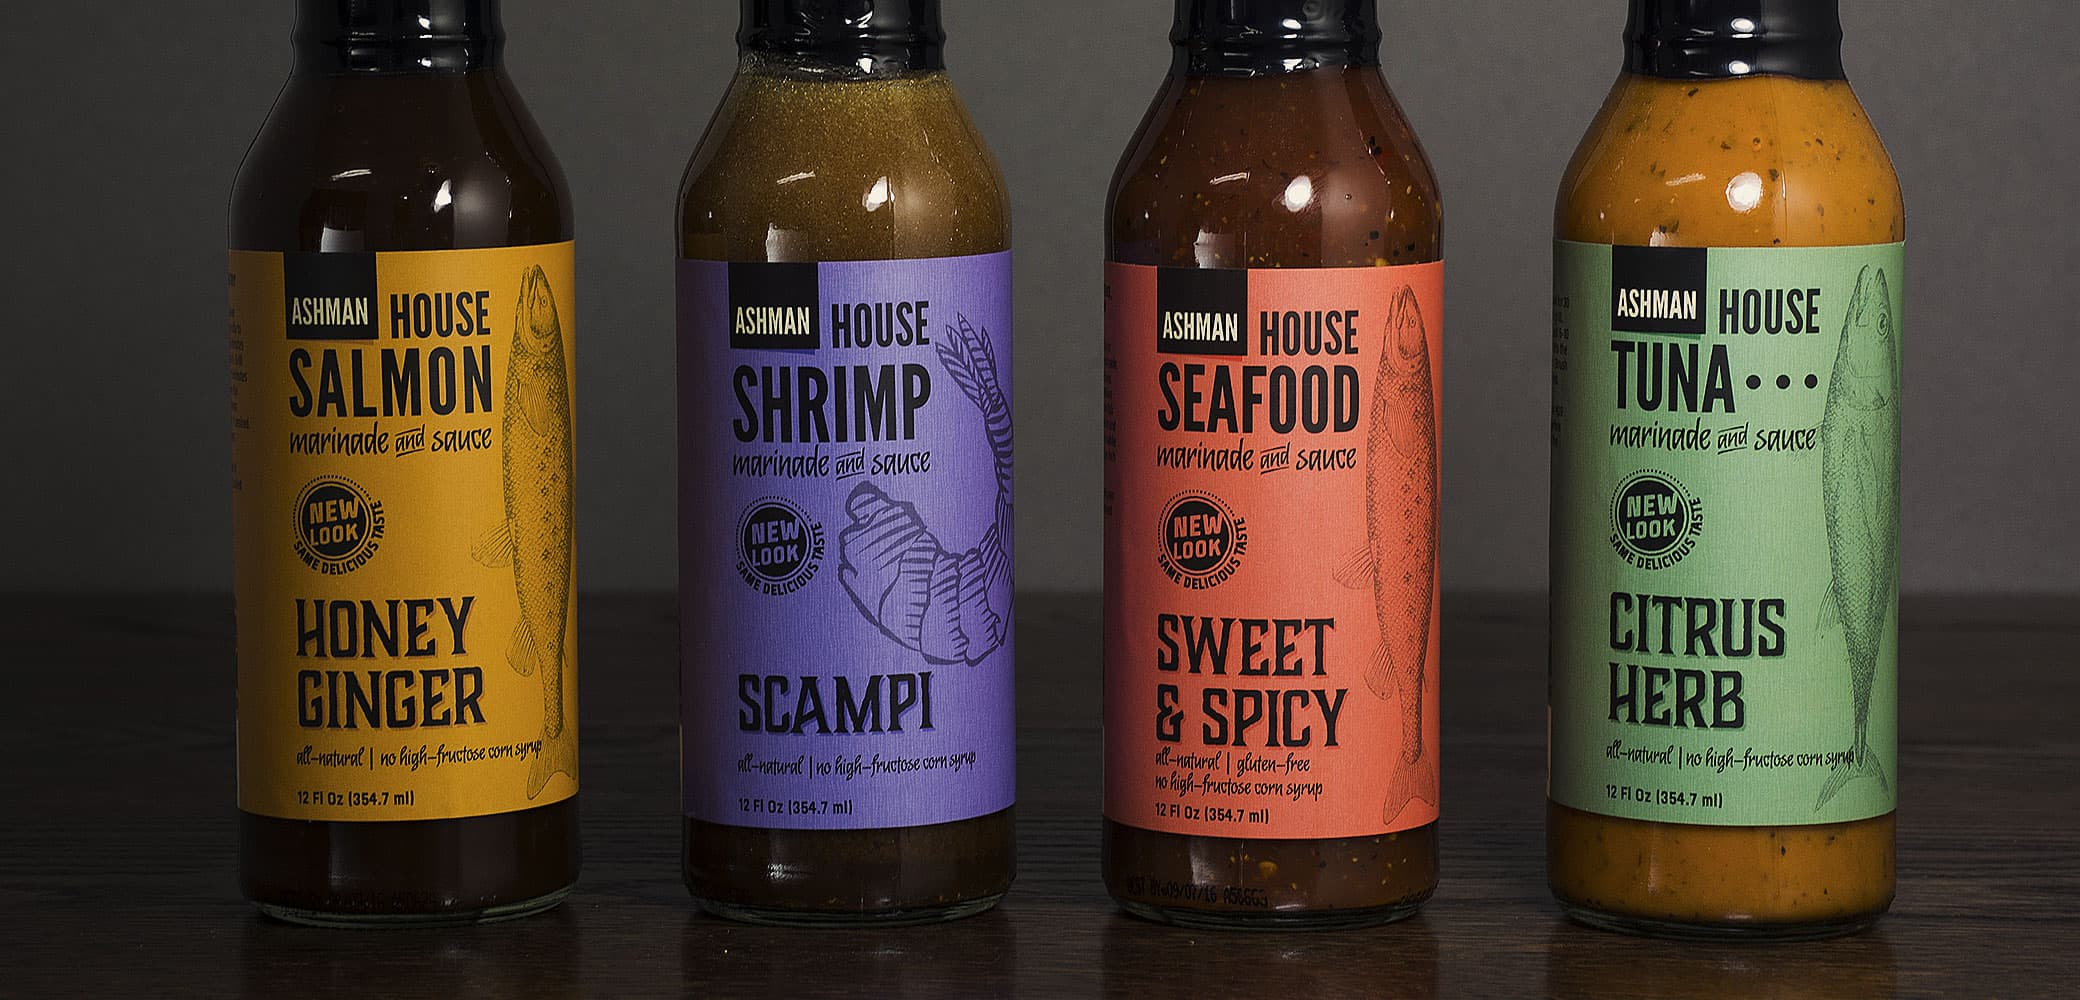 Ashman Manufacturing House Seafood Sauce Label Design by Red Chalk Studios